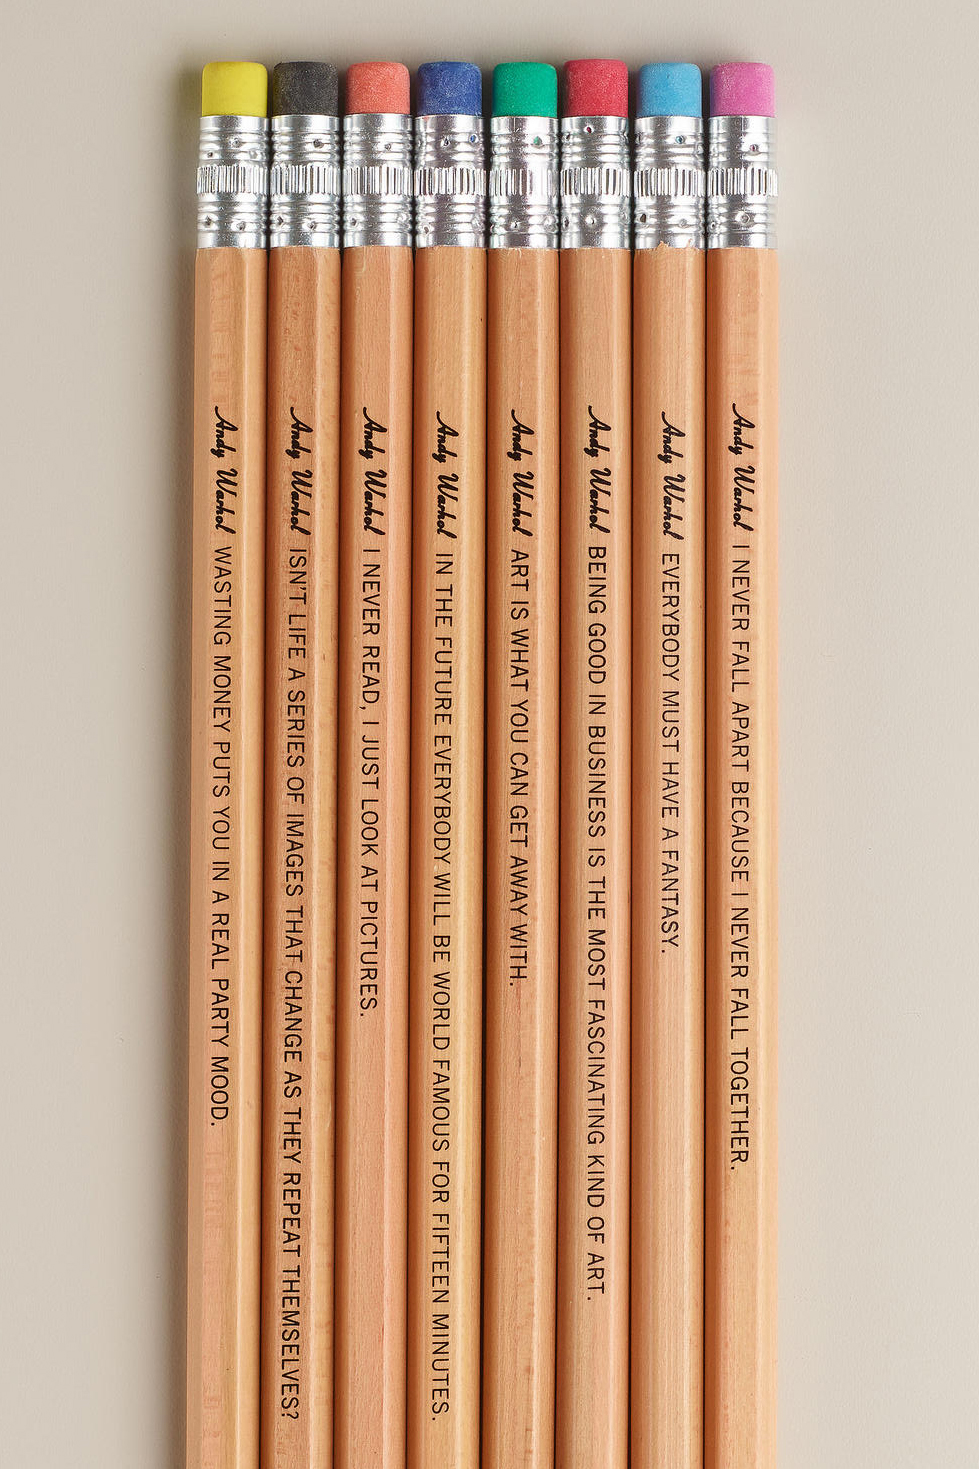 karenhurley: Warhol Philosophy Pencils